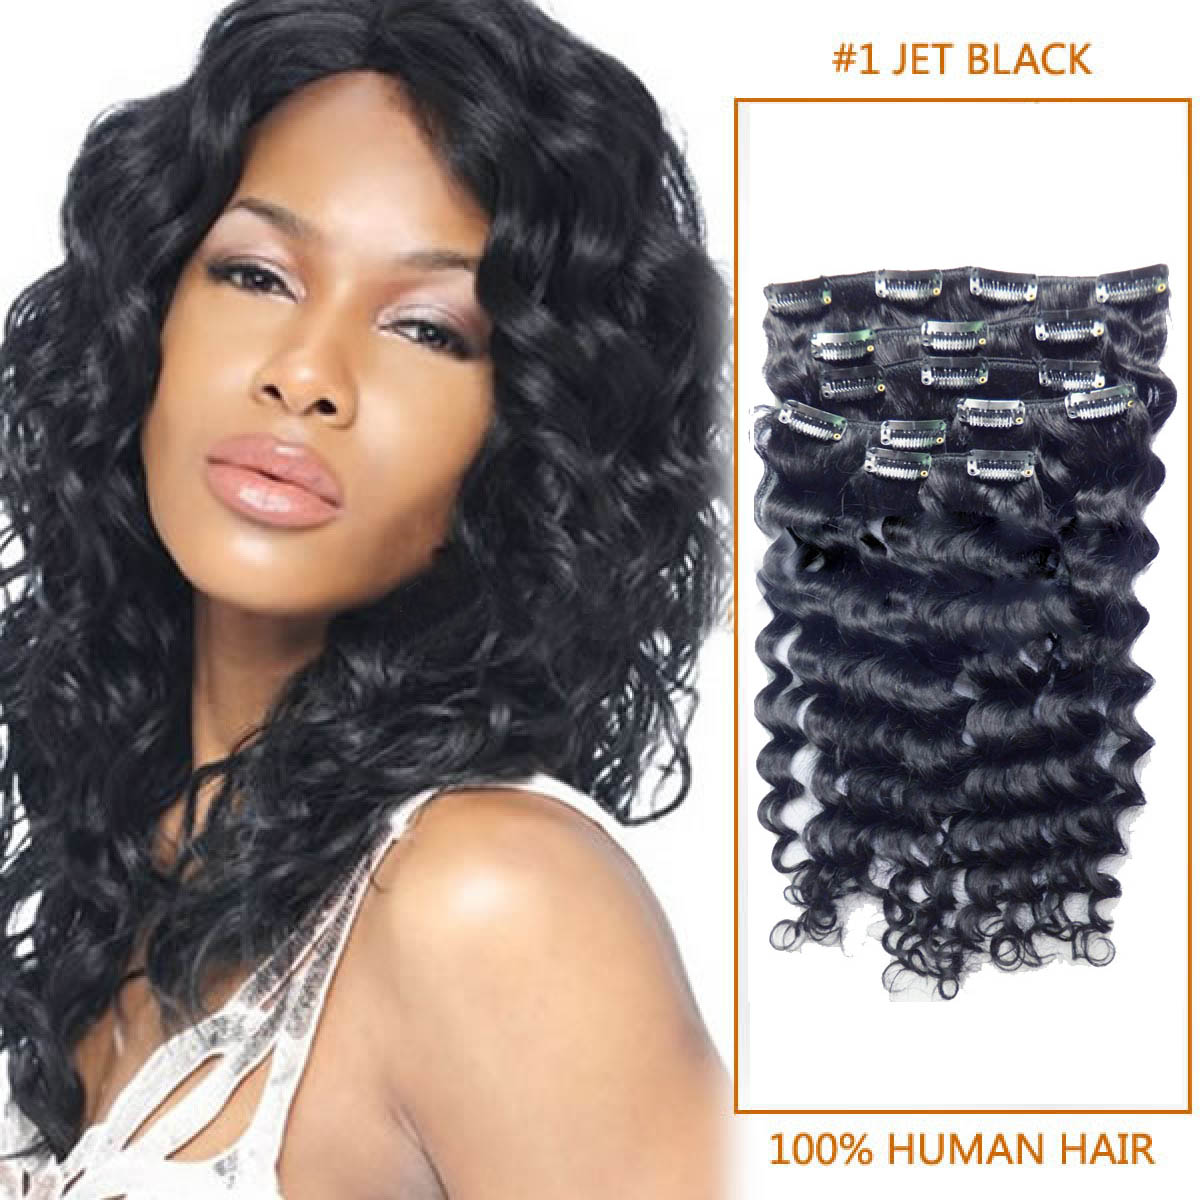 24 Inch New 1 Jet Black Clip In Remy Hair Extensions Curly 7 Pcs Pack